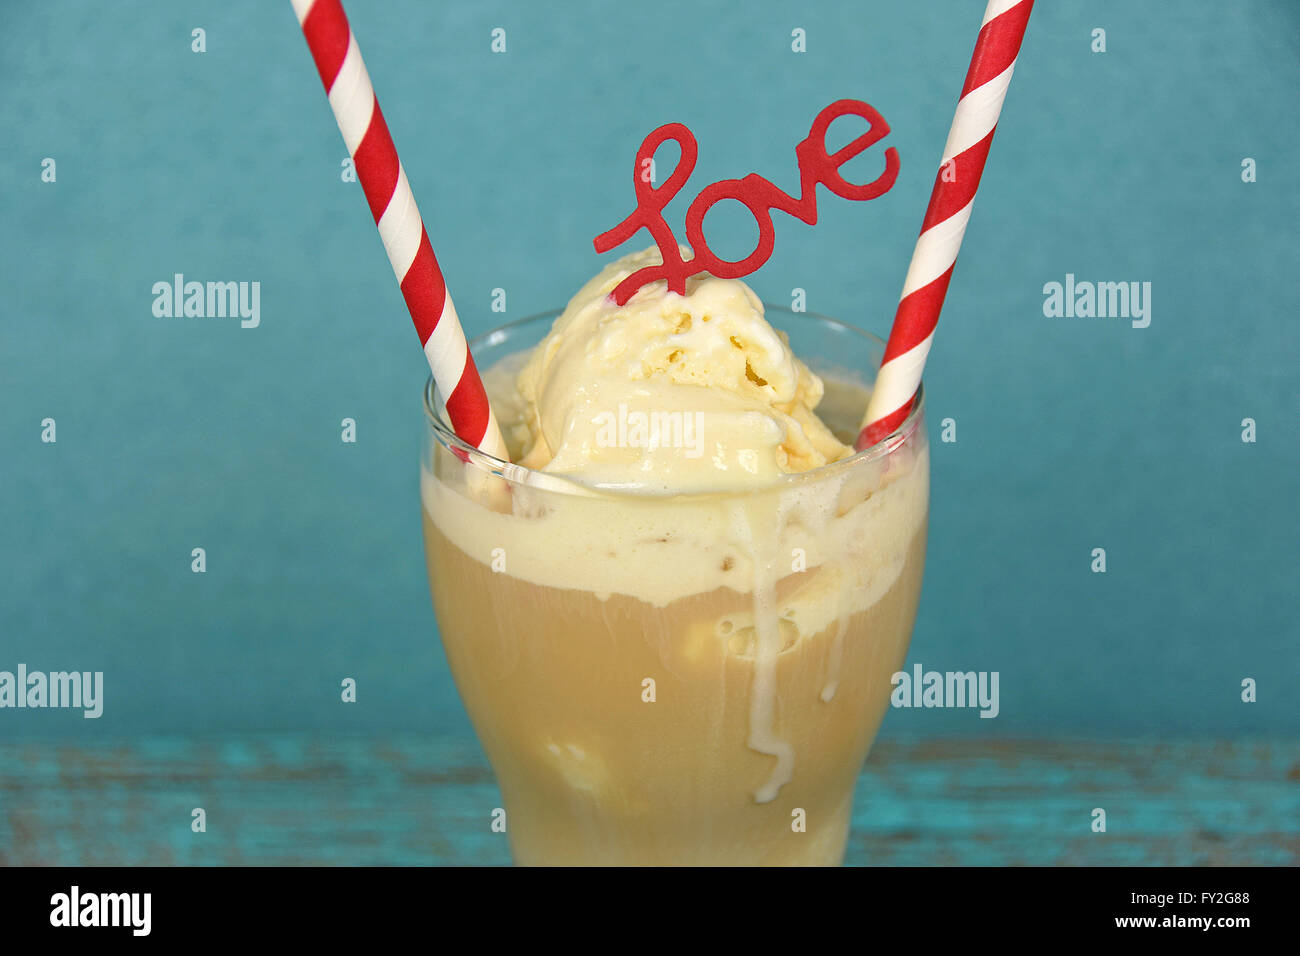 Red and white straw with love sign in root beer float on aqua painted rustic wood. - Stock Image